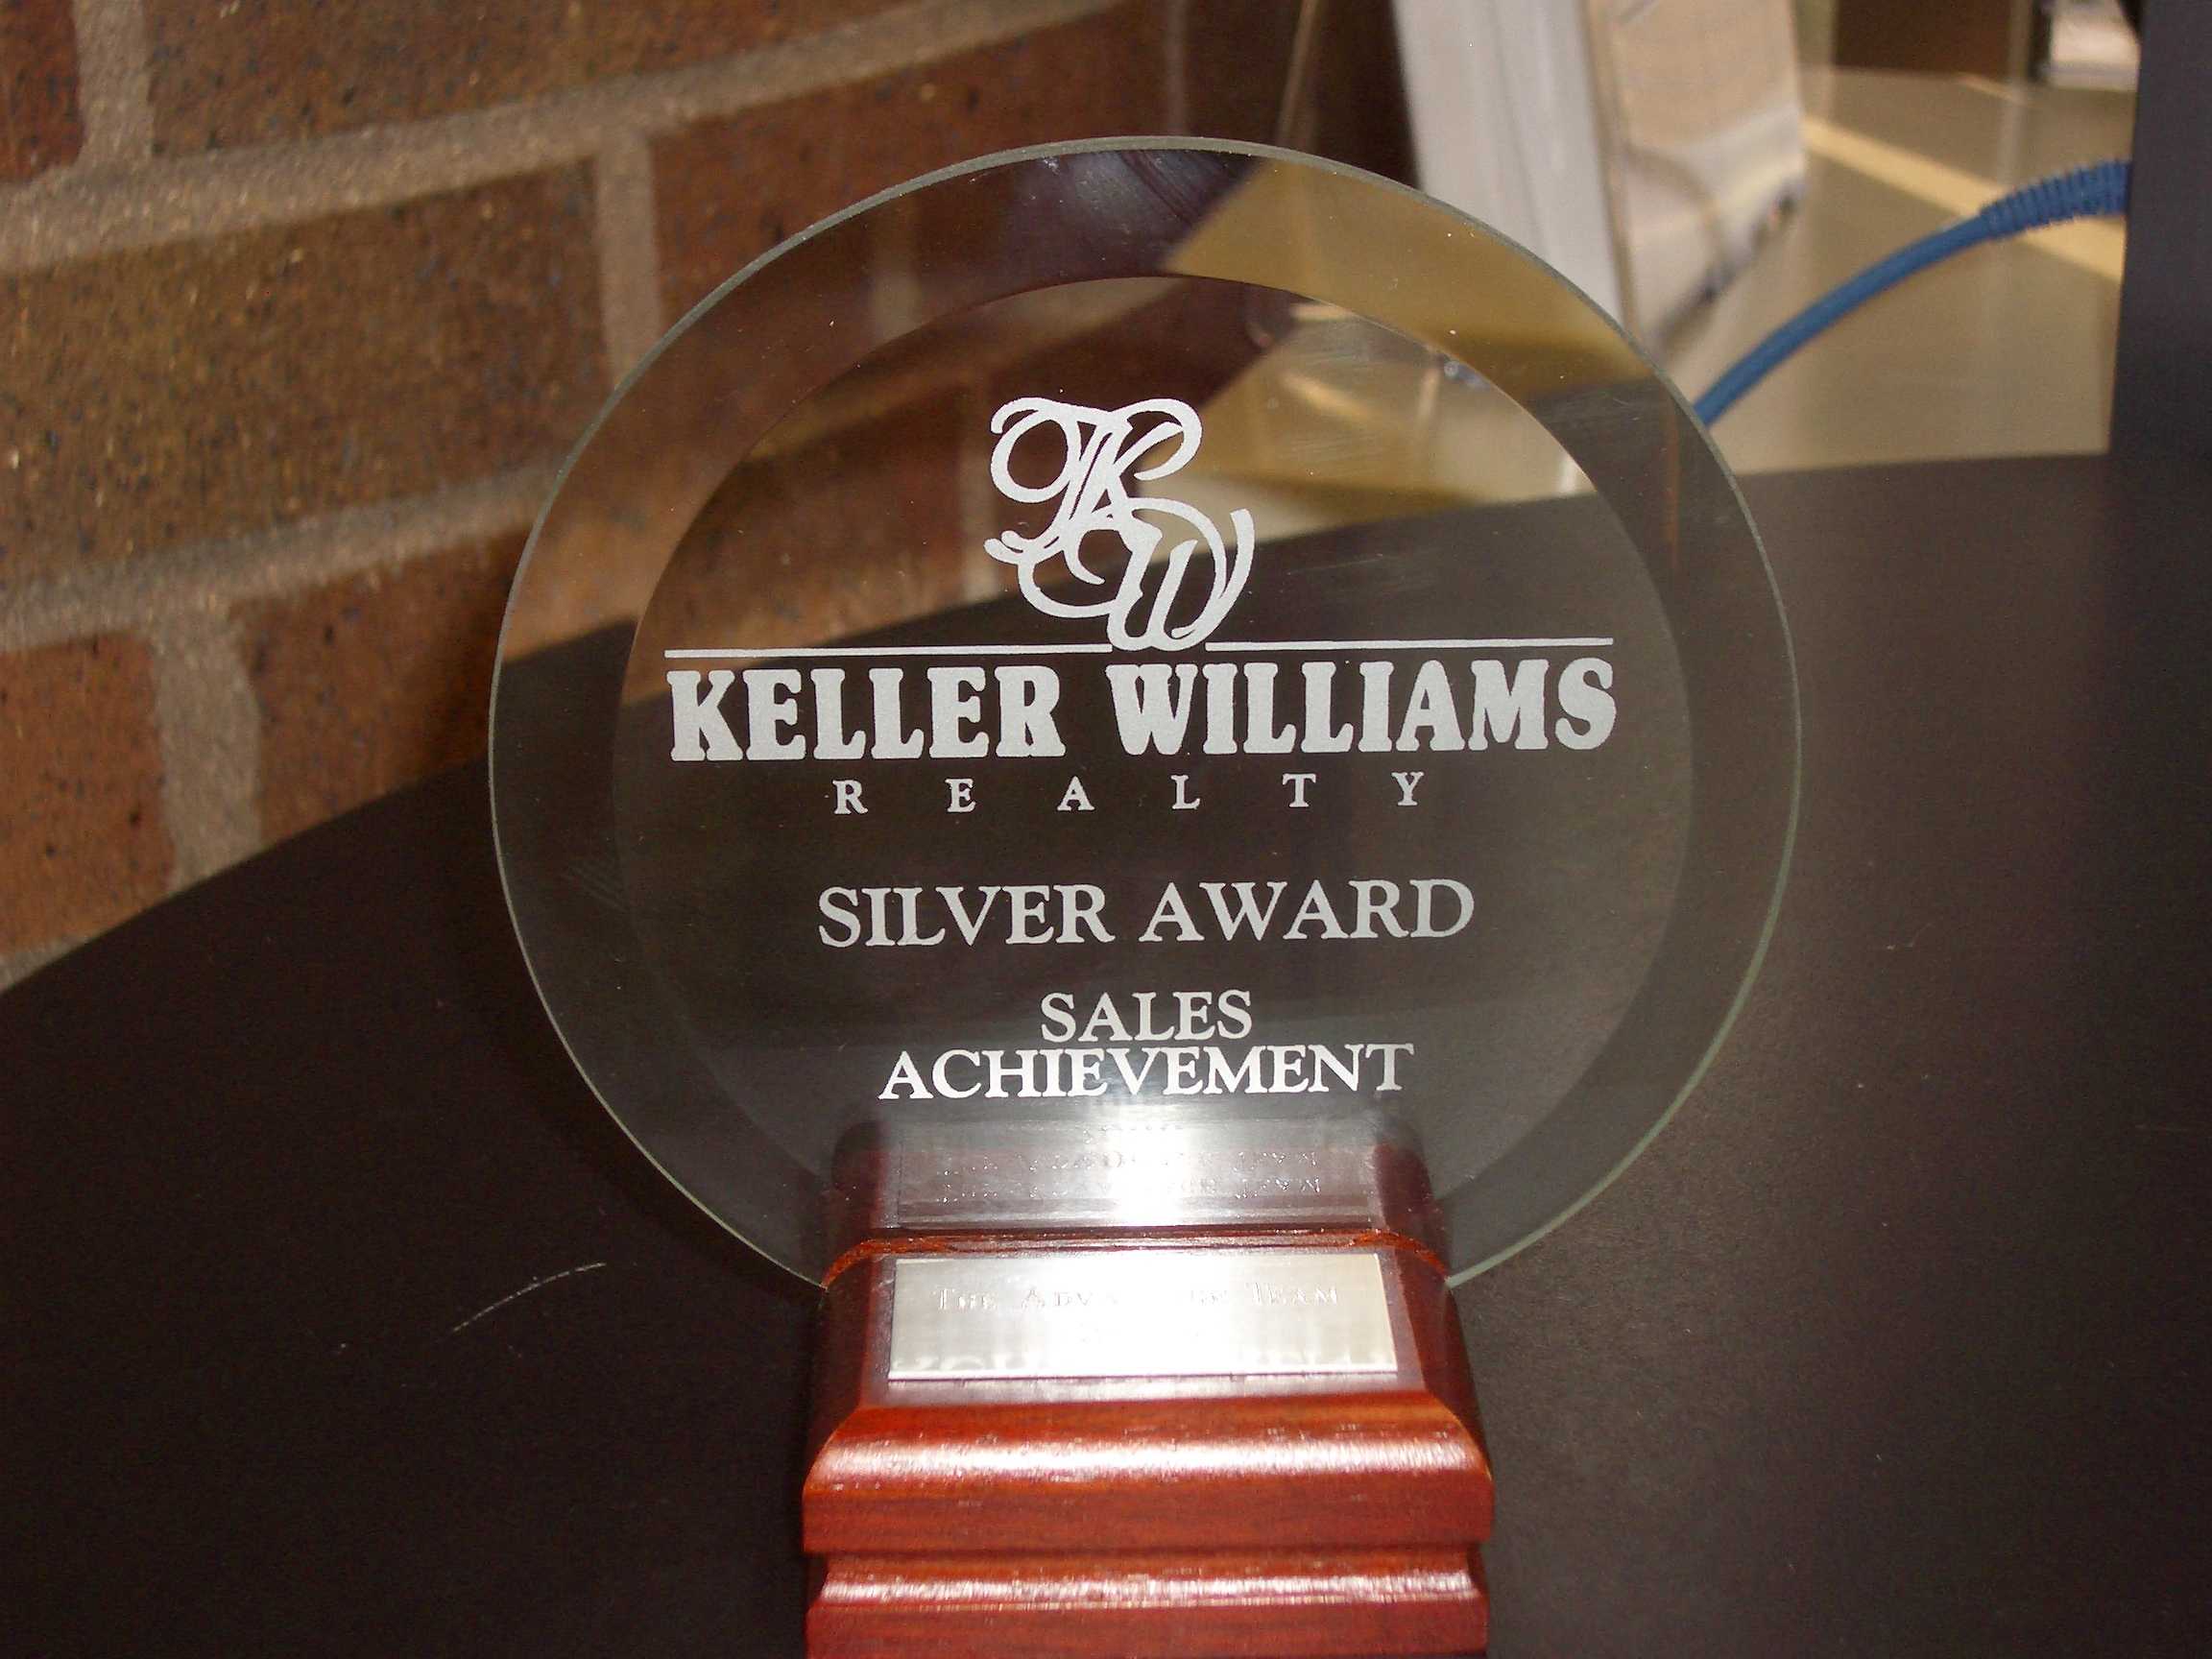 Sales Achievement Silver Award